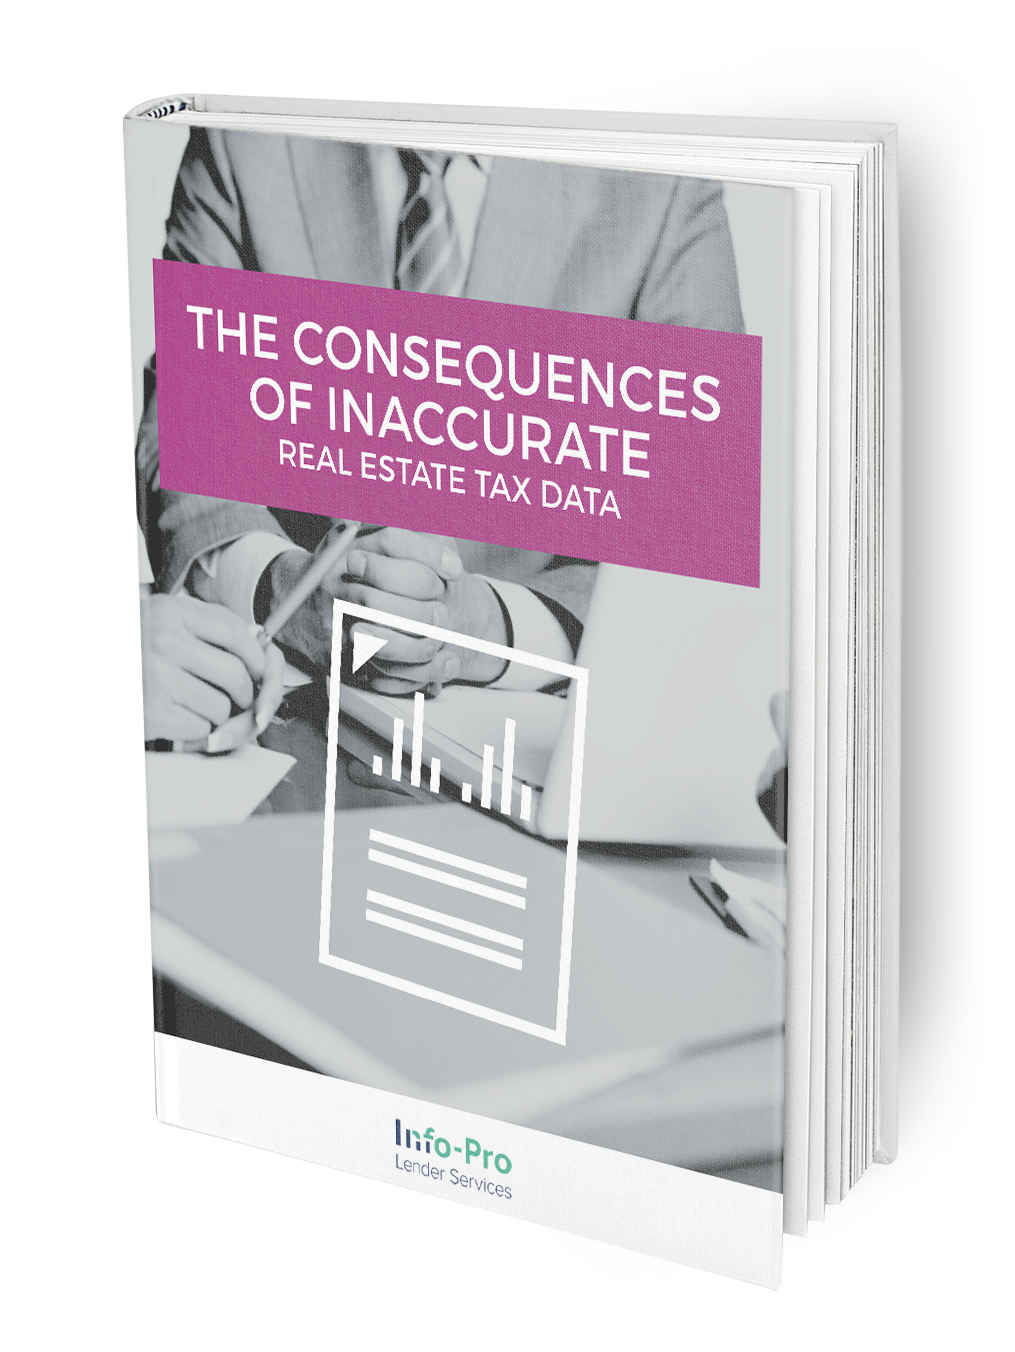 The consequences of inaccurate real estate tax data